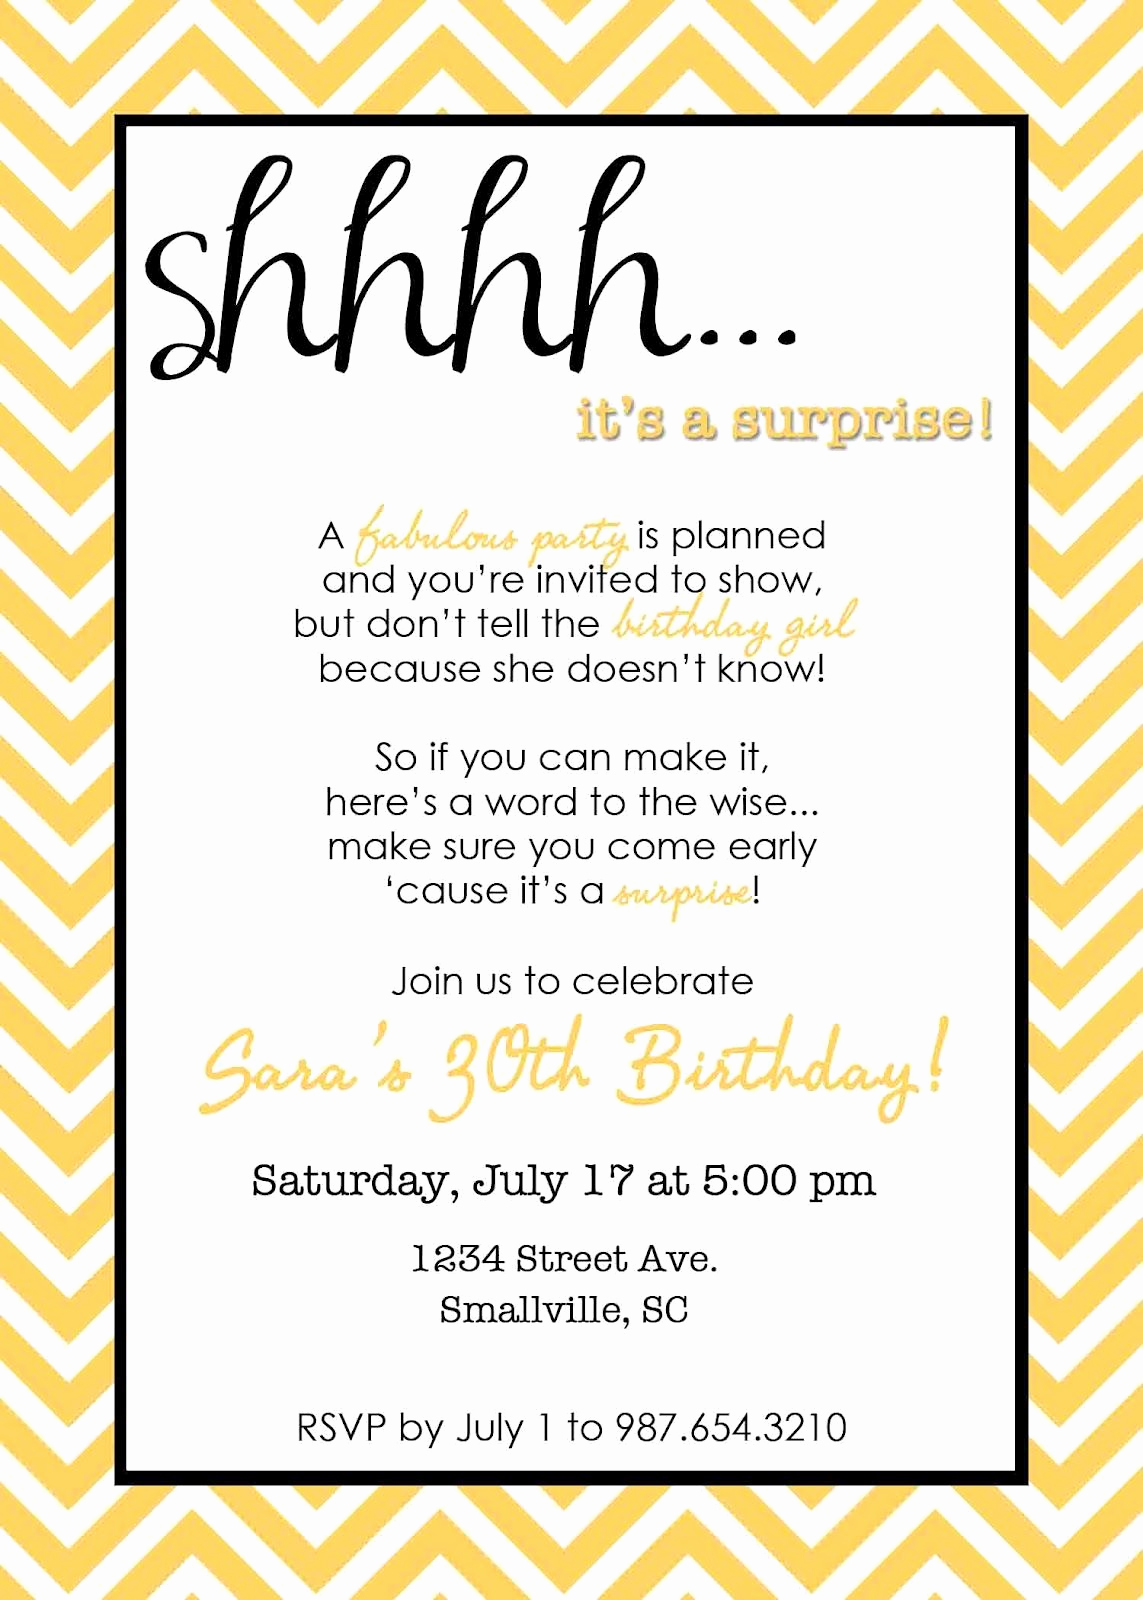 Surprise Birthday Party Invitation Wording New Wording for Surprise Birthday Party